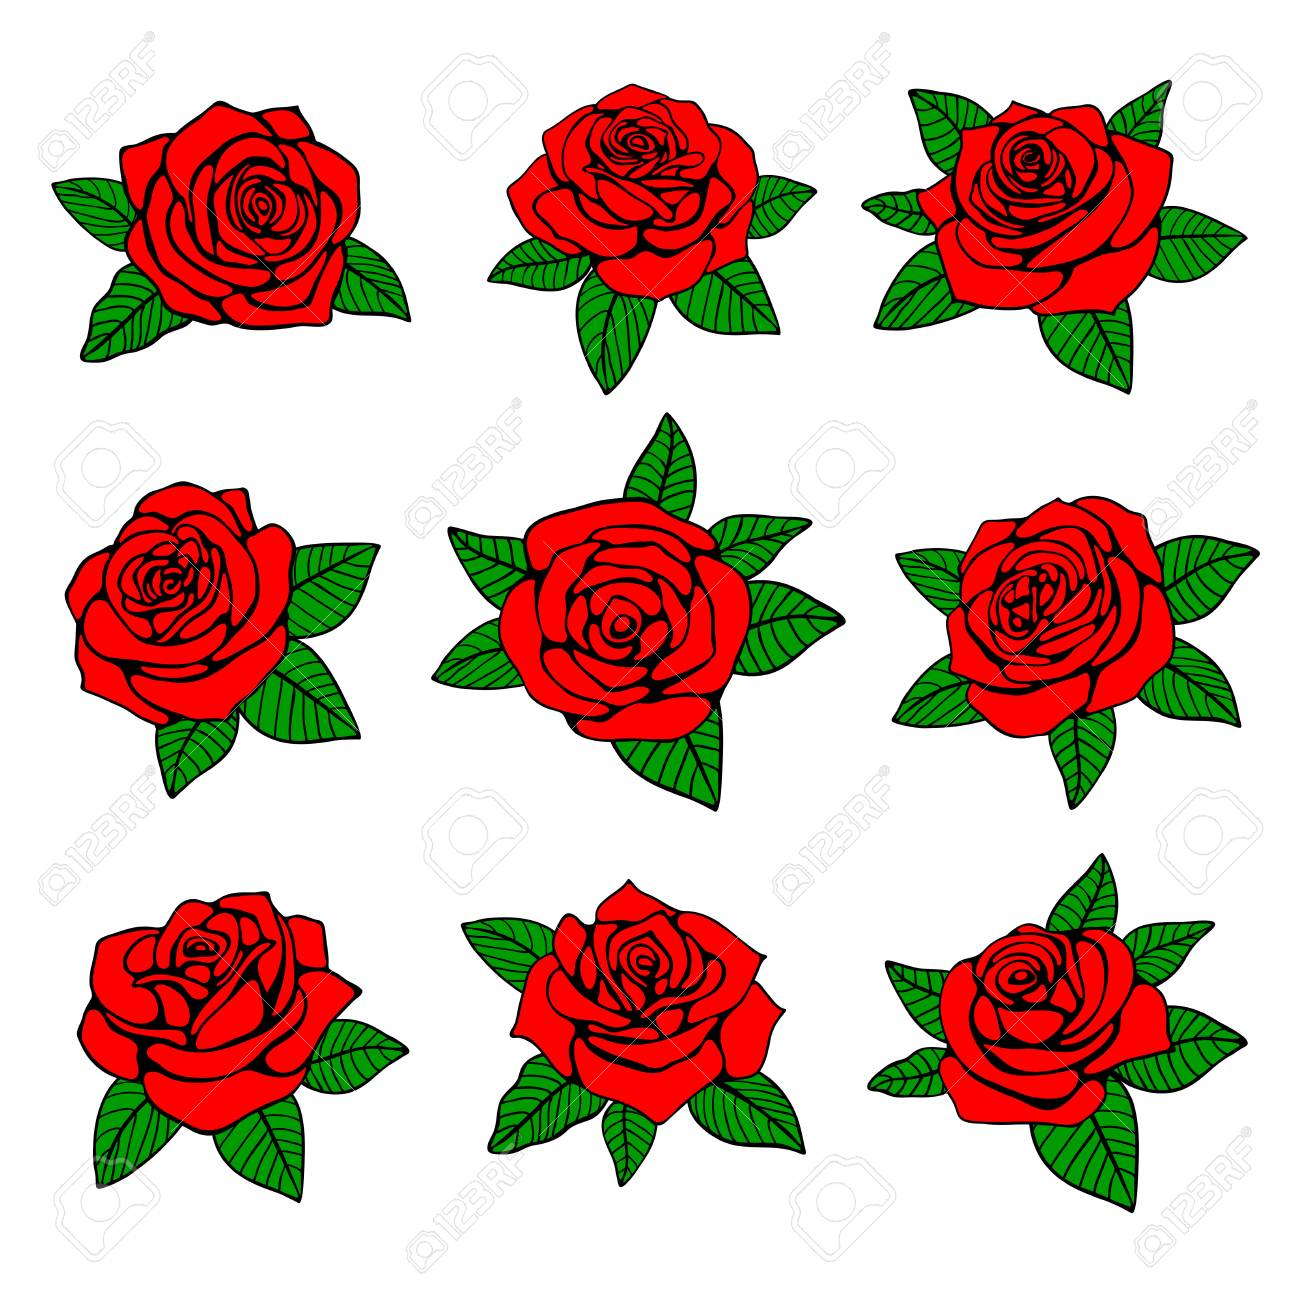 e3d3c39860456 Red roses with green leaves vector design for tattoo. Nature red rose, with  green